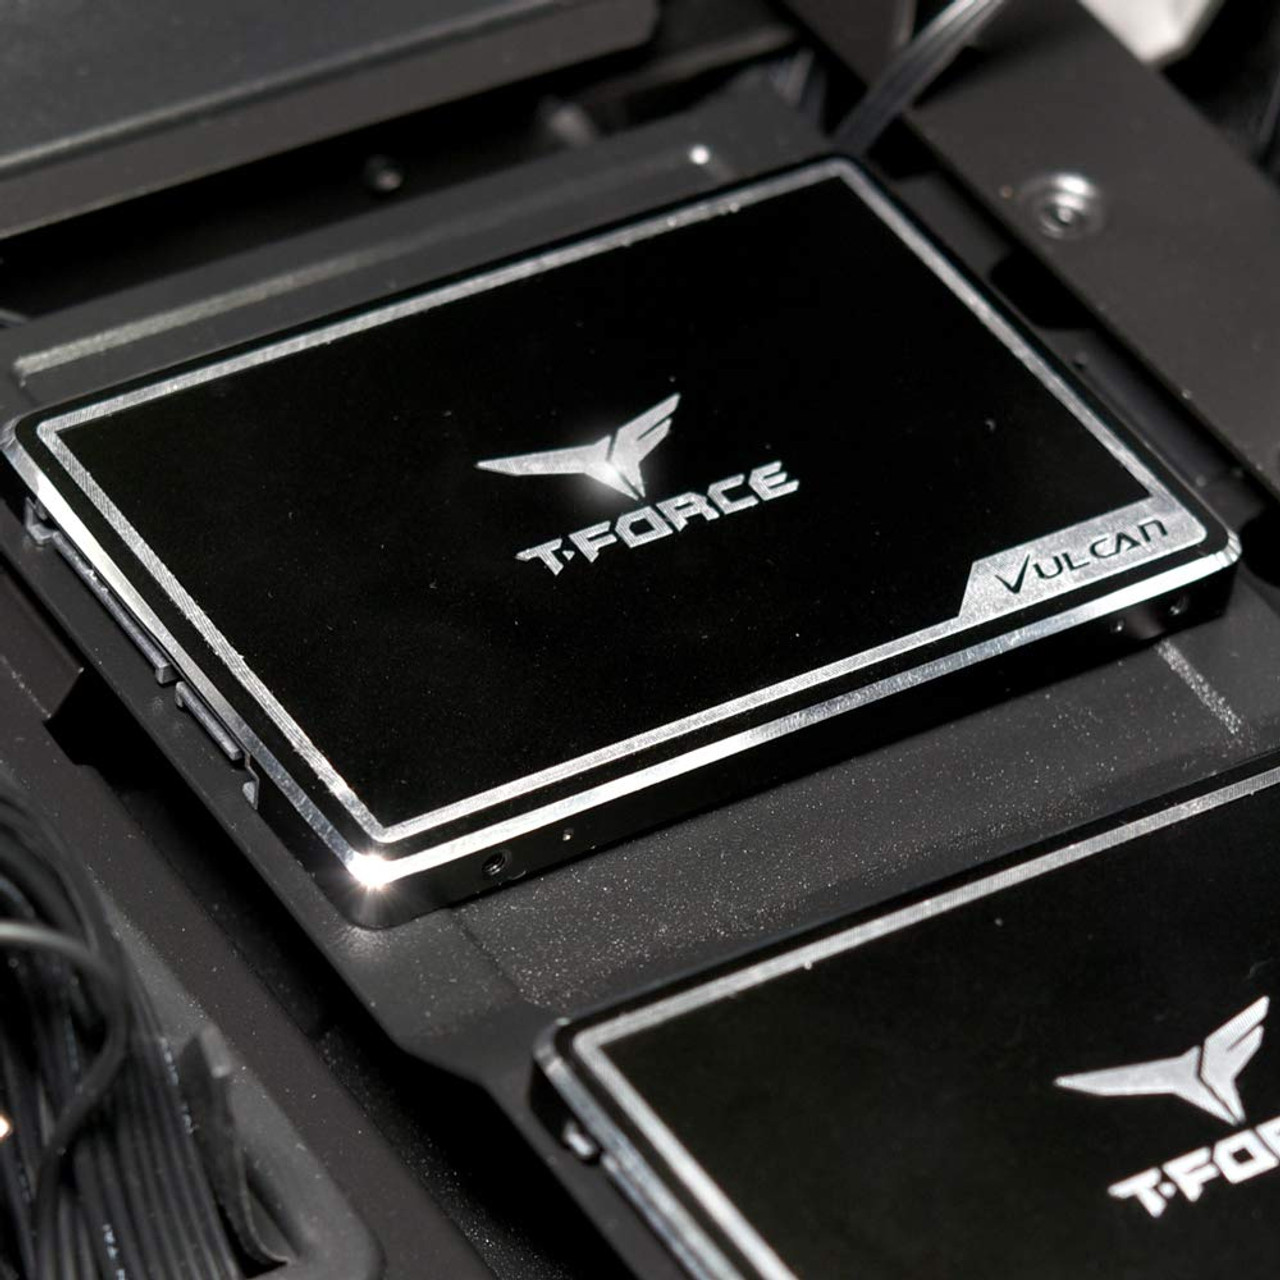 TEAMGROUP T-Force Vulcan 250GB 2.5 inch SATA III 3D NAND Internal Solid State Drive SSD - T253TV250G3C301